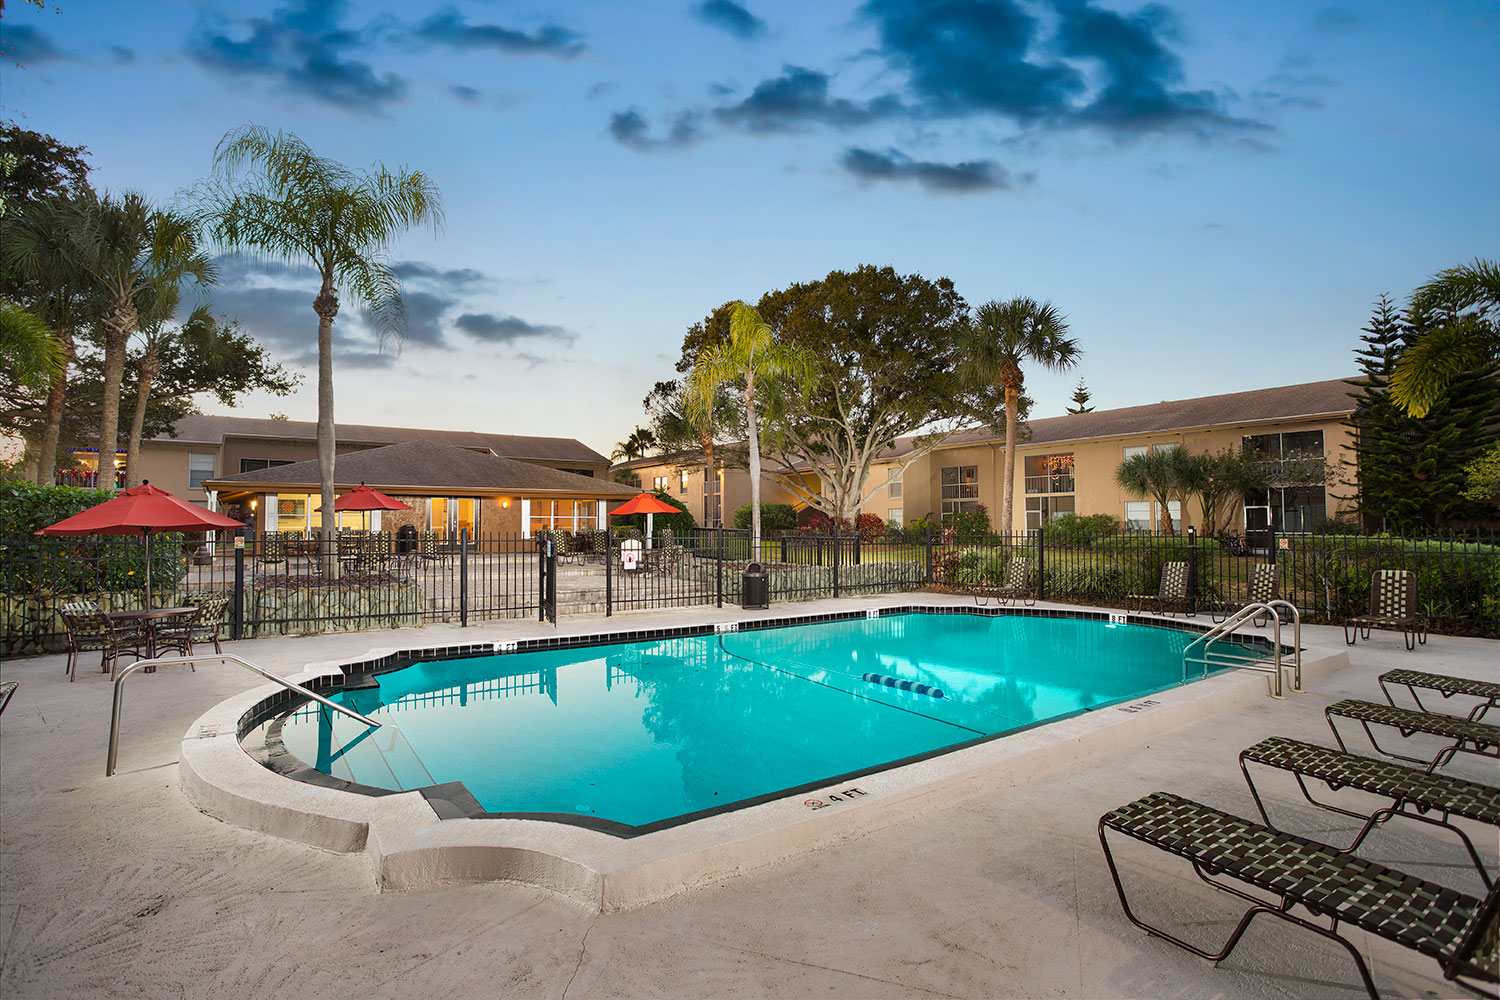 Balfour Beatty Communities expands Florida portfolio with acquisition in Largo